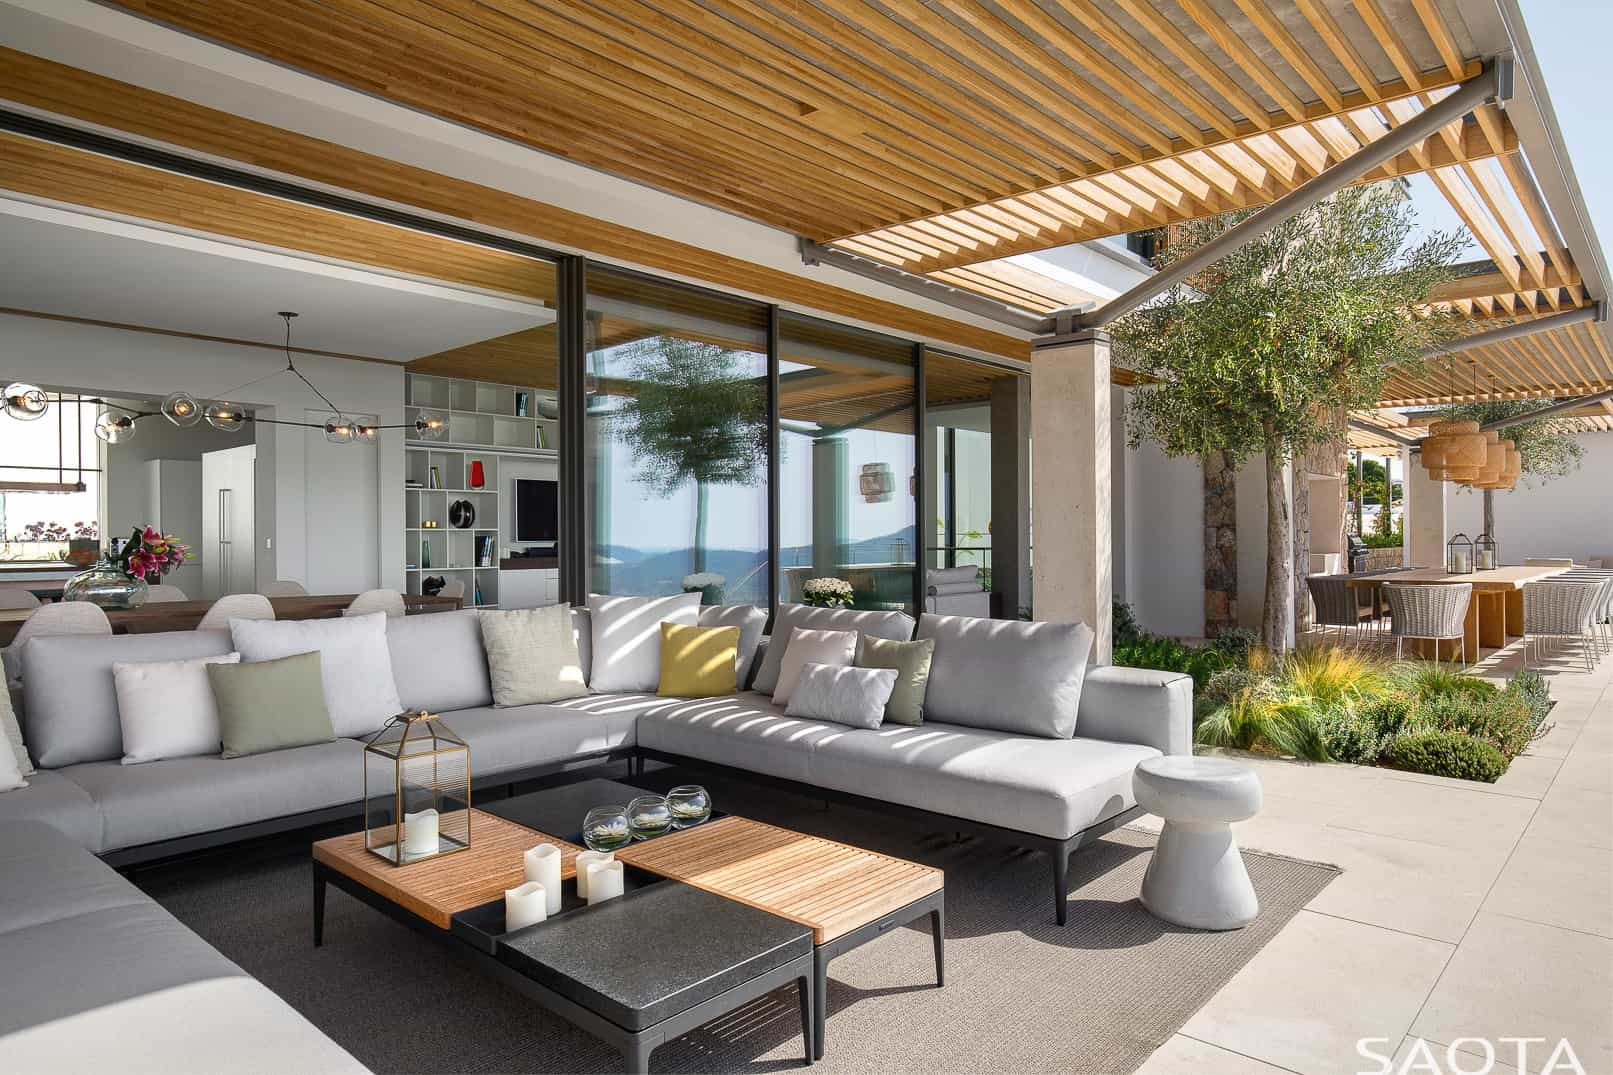 The patio maximises the luxurious outdoor living experience. Photo by Adam Letch / Architecture by Rys Architects / Interior design by ARRCC and Rys Architects / Lighting design by Lux Populi / Landscaping by Cracknell